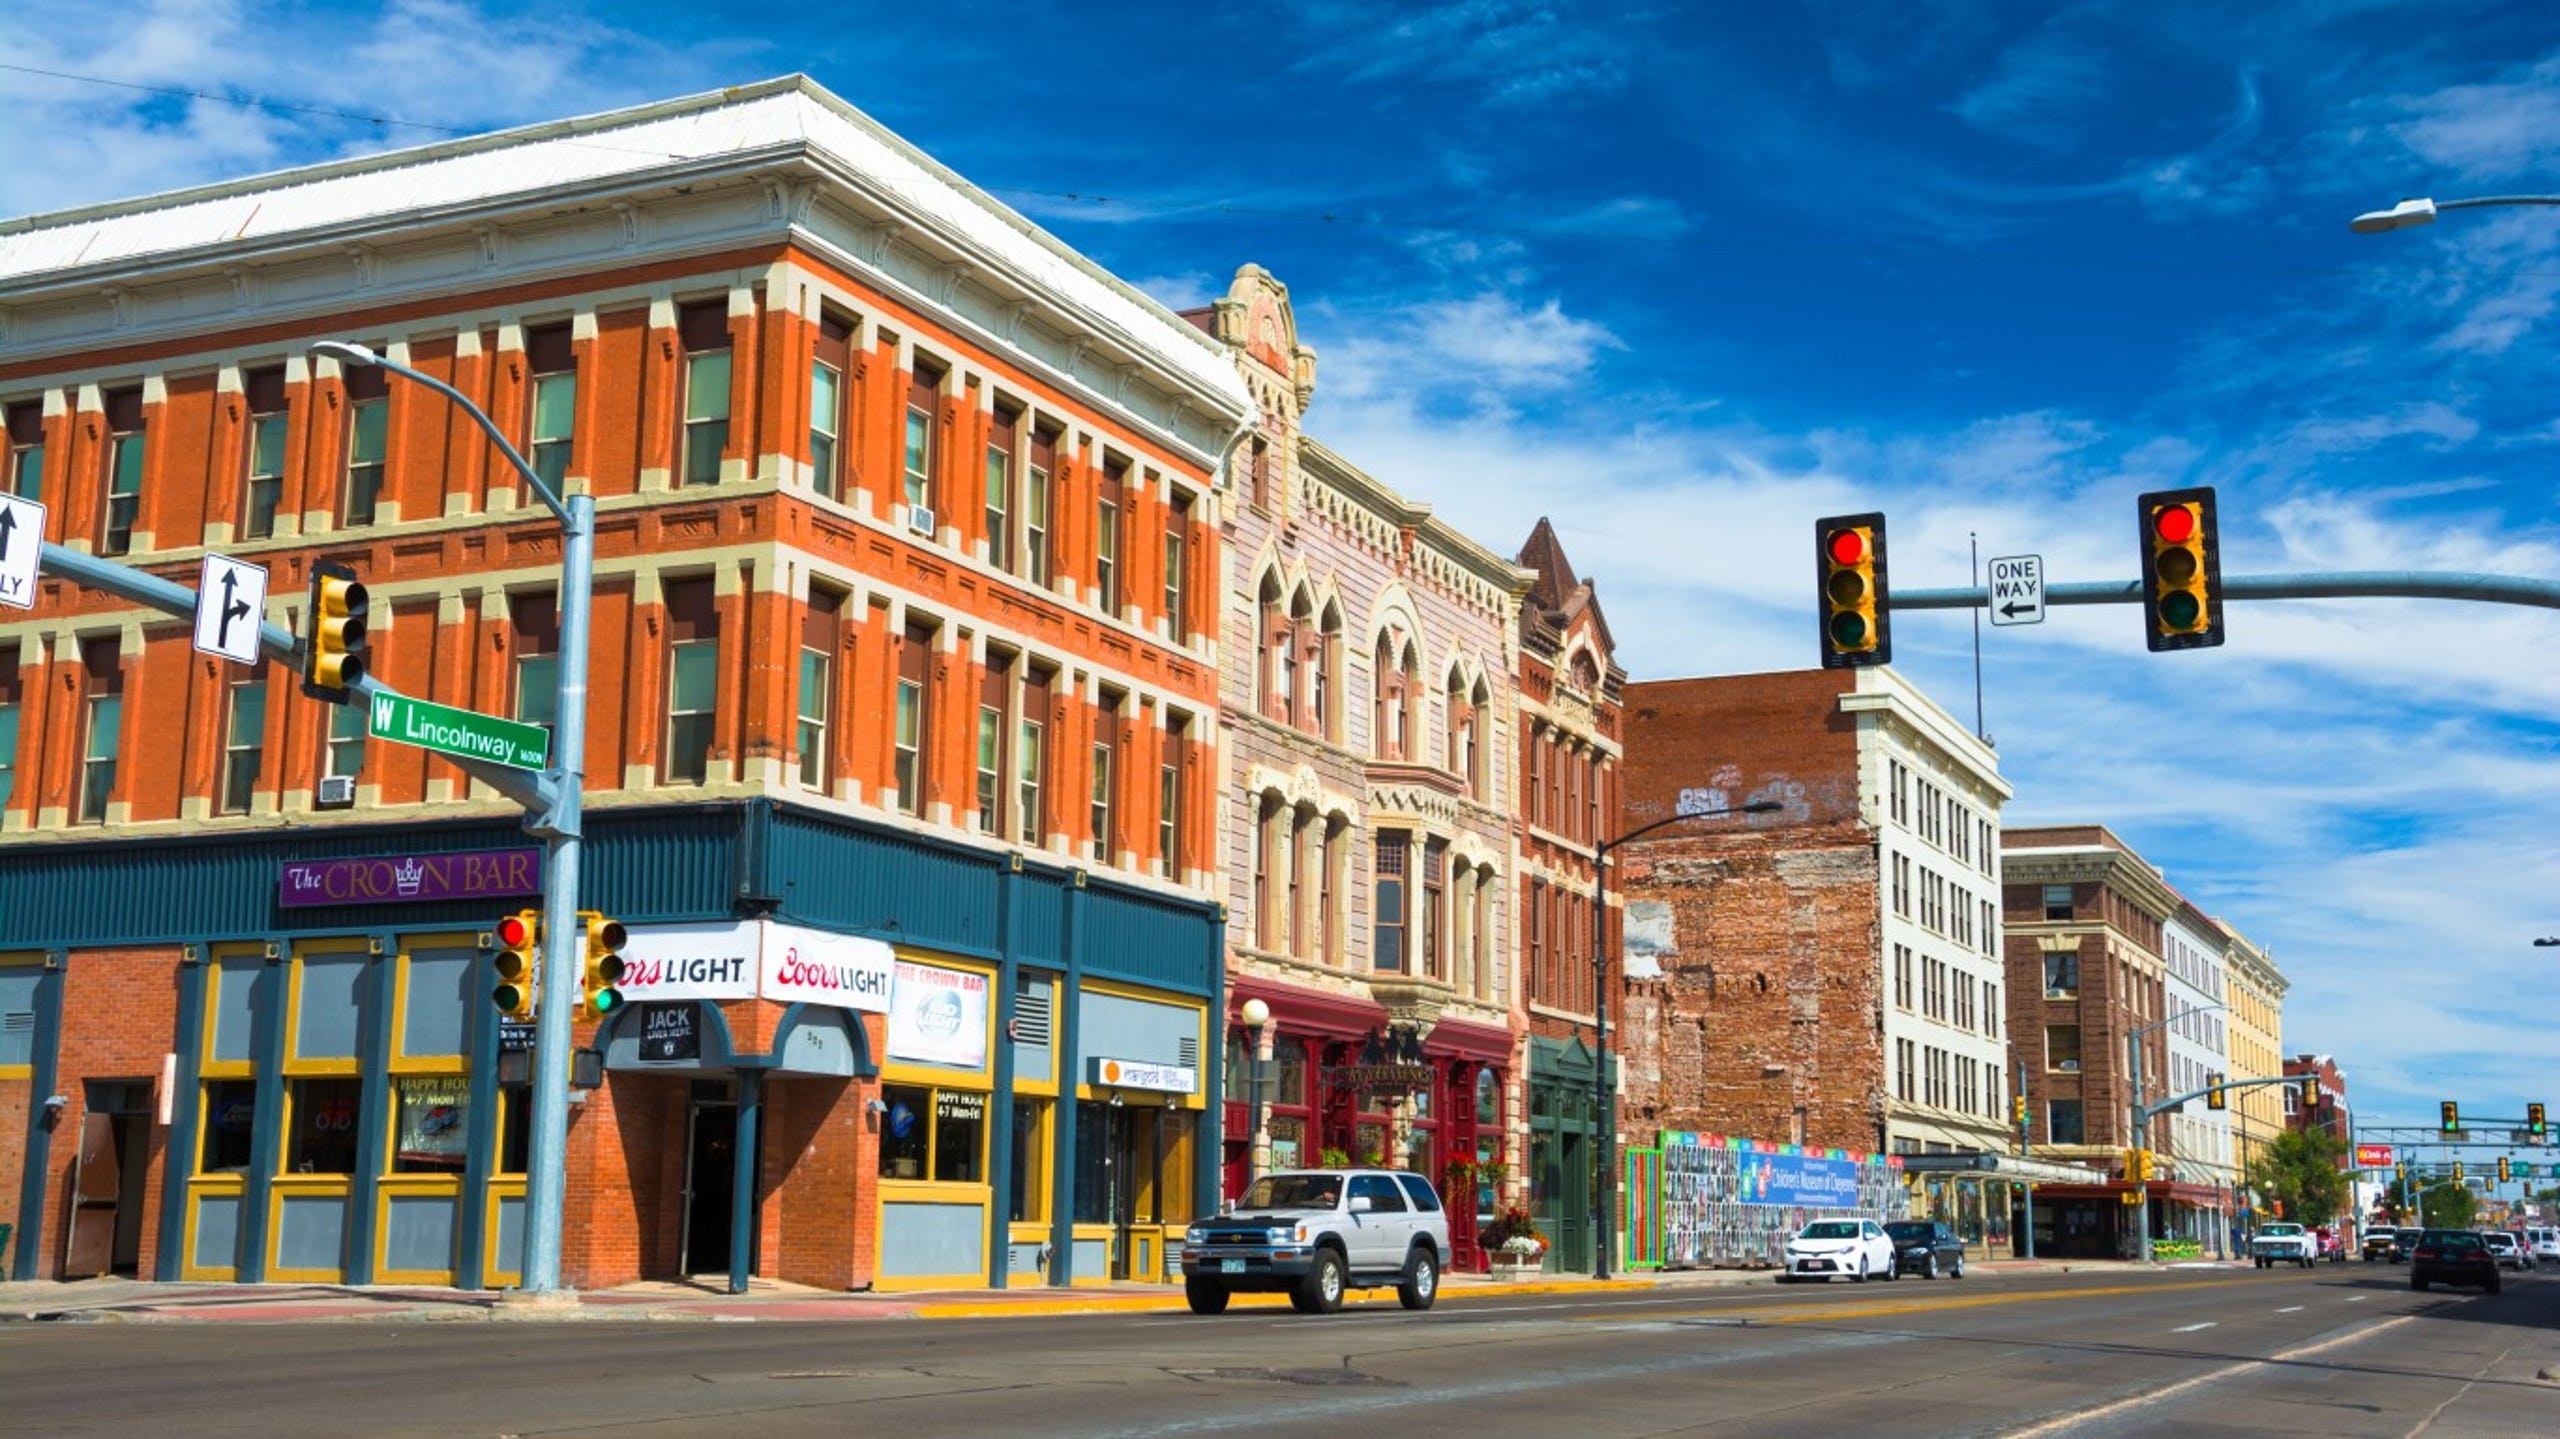 <strong>18. Cheyenne, Wyoming</strong><br /> <strong>&bull; Preschool enrollment:</strong> 27.6% (lowest 10%)<br /> <strong>&bull; High school graduation rate:</strong> 79.2% (lowest 10%)<br /> <strong>&bull; Pop. with access to areas for exercise:</strong> 71.3%<br /> <strong>&bull; Property crime rate:</strong> 2,843 crimes per 100,000 people